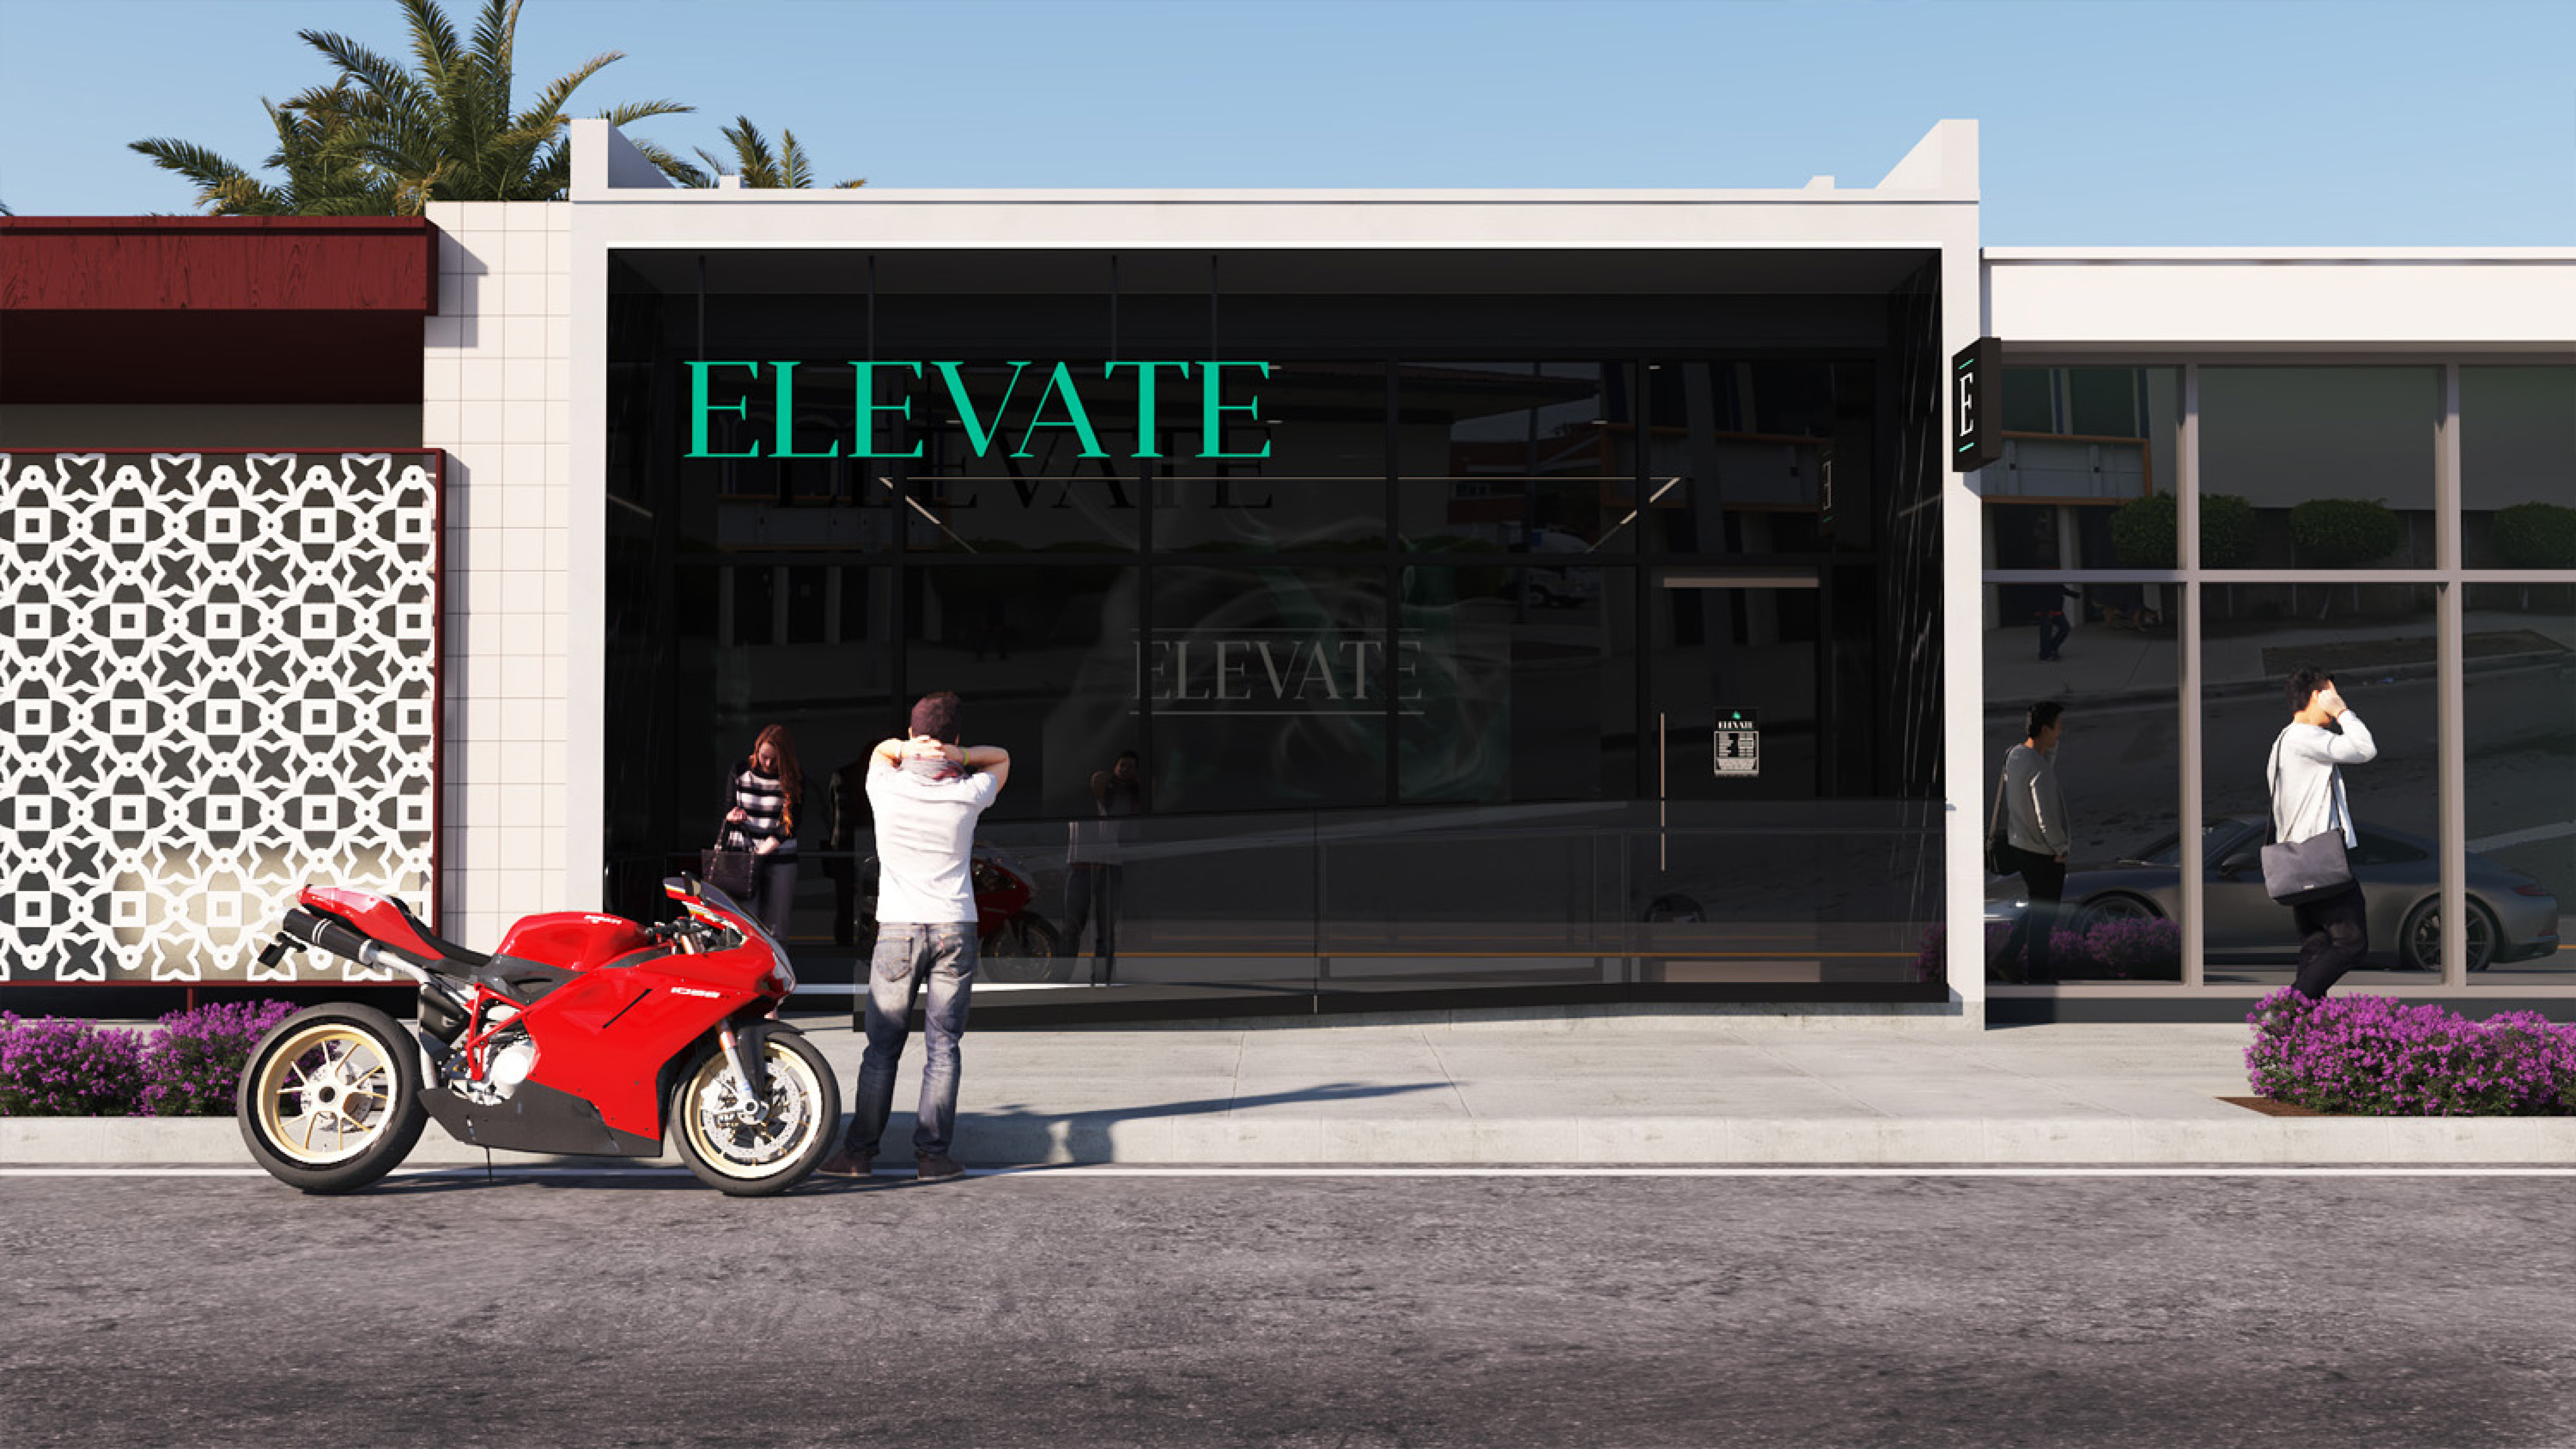 Elevate Dispensary in Oxnard CA. Dispensary Design by High Road Studio, coming soon.